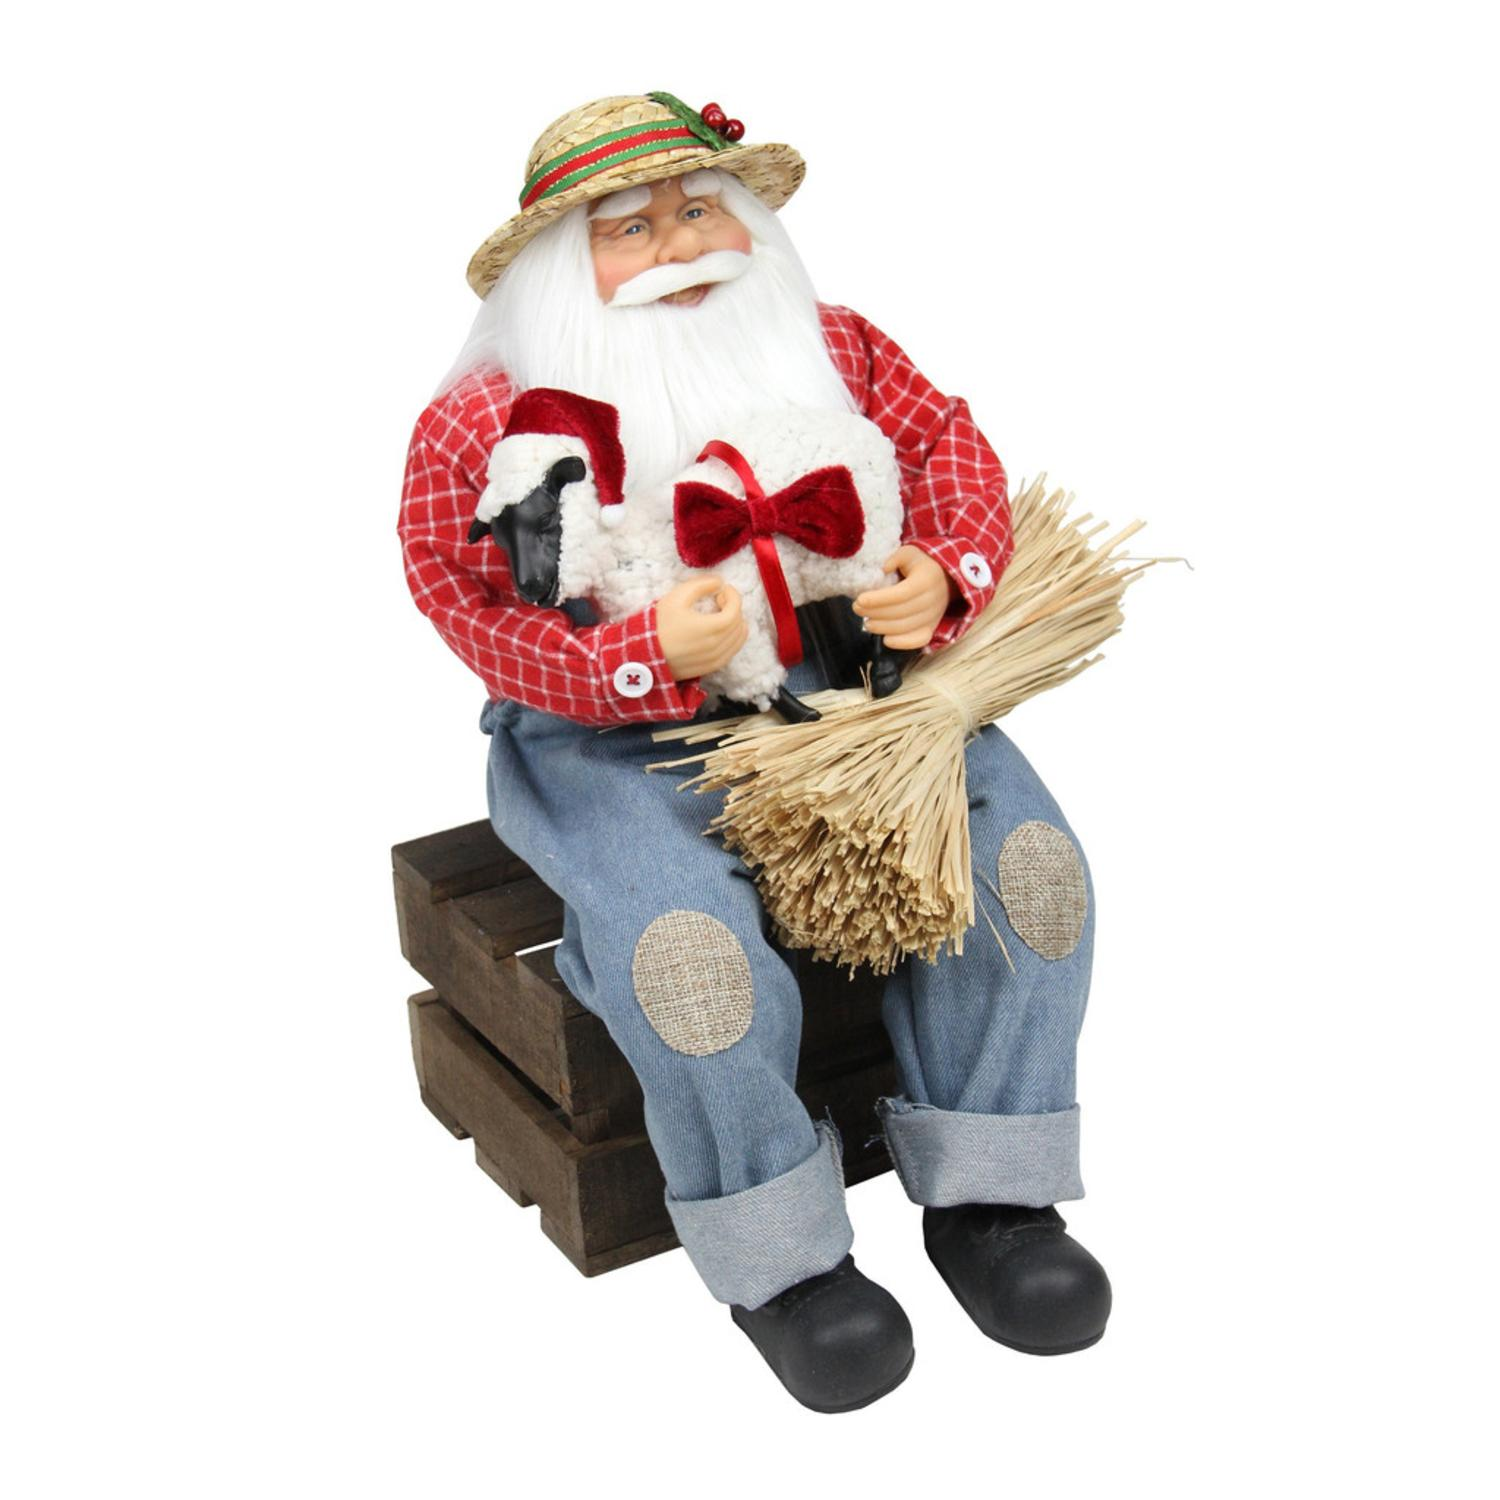 "15"" Country Heritage Santa Claus Holding Hampshire Sheep Christmas Decoration - image 1 of 1"